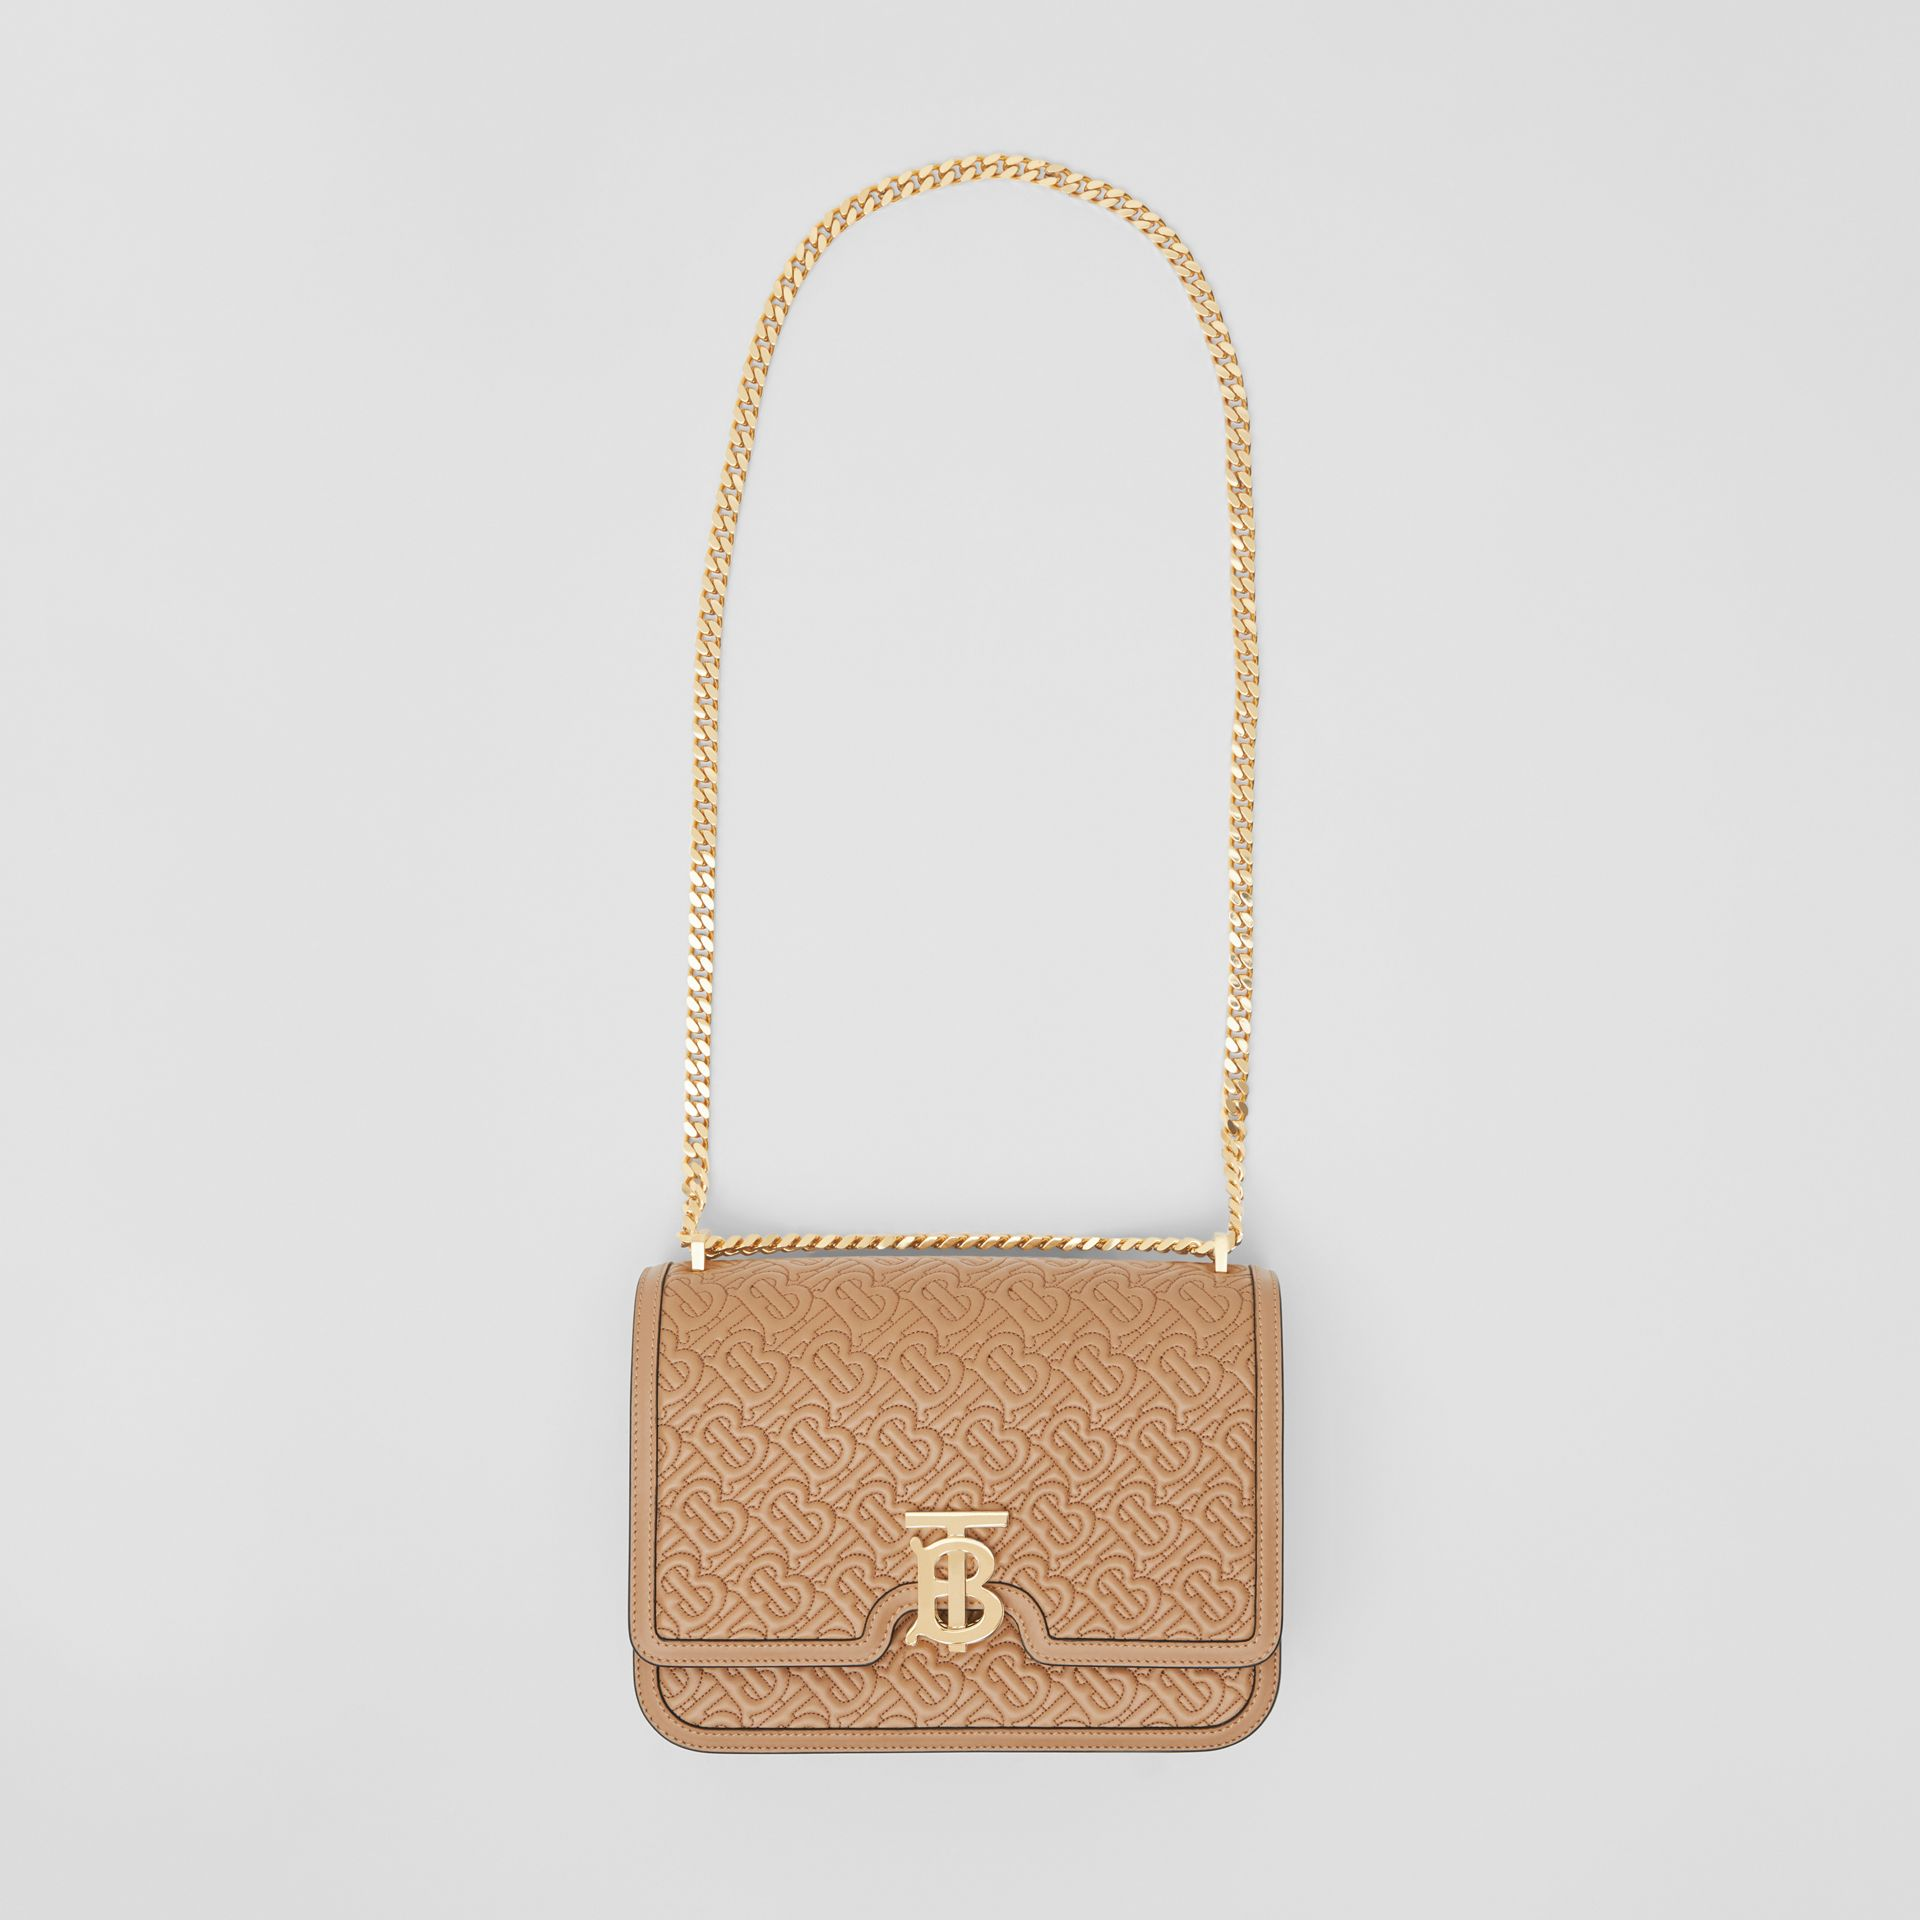 Medium Quilted Monogram Lambskin TB Bag in Honey - Women | Burberry Singapore - gallery image 3